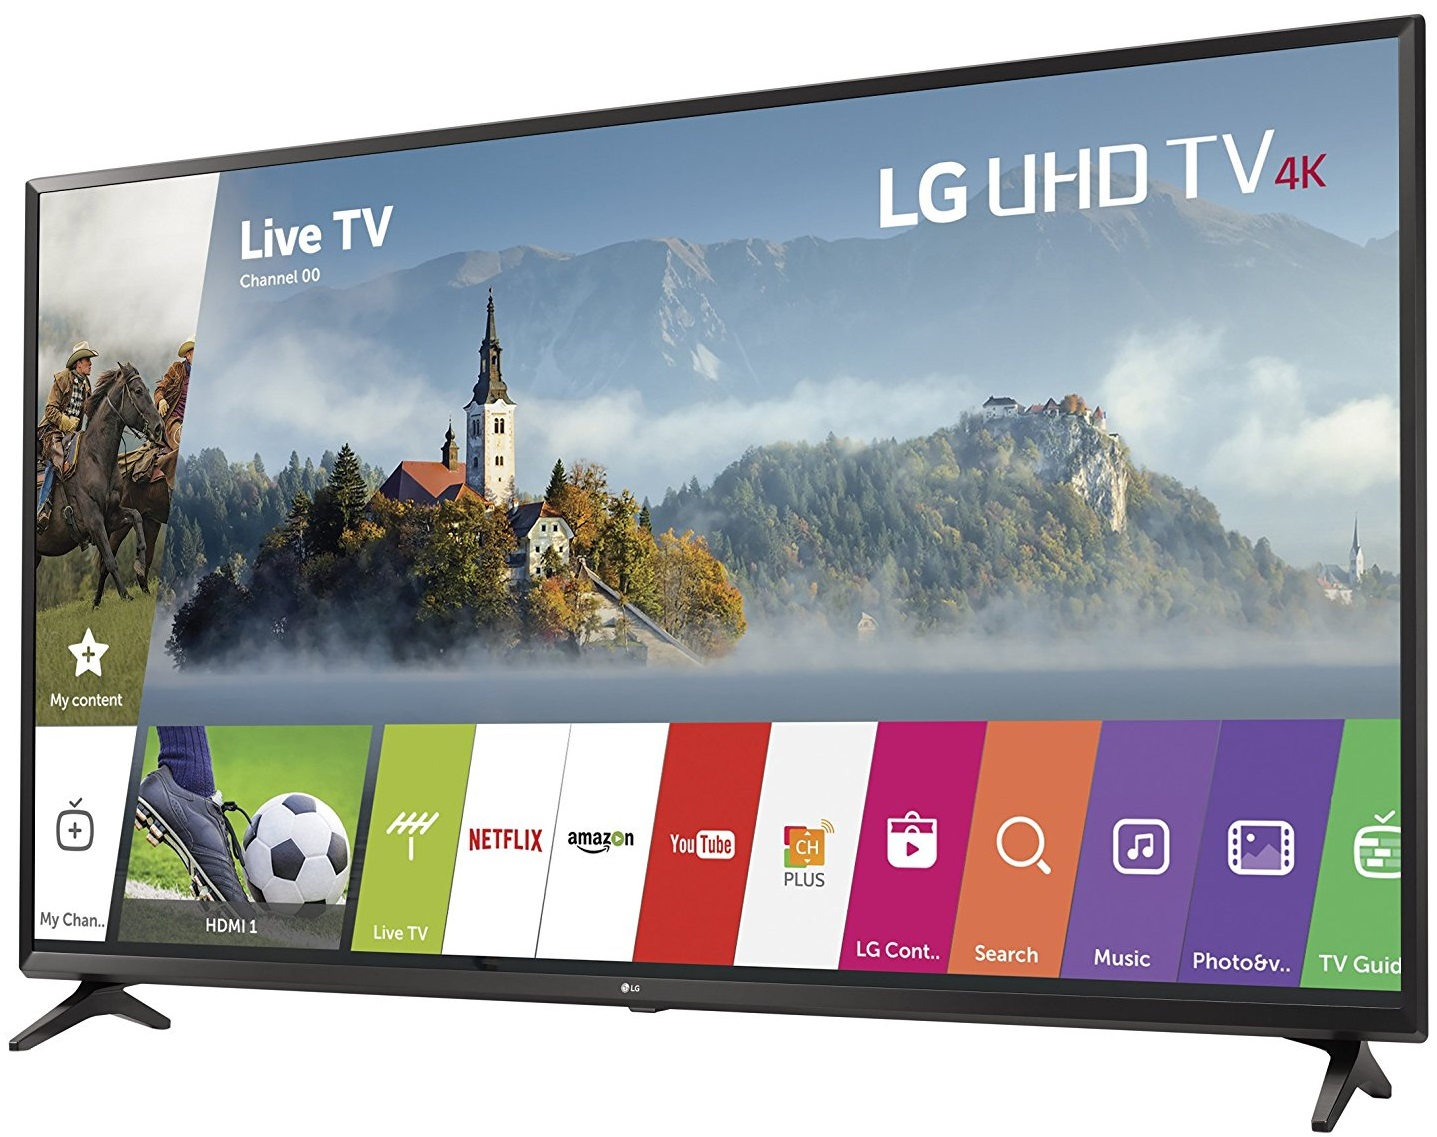 LG 43UJ6300 vs 43UH6100 Review : LG's 2017 and 2016 Basic 43